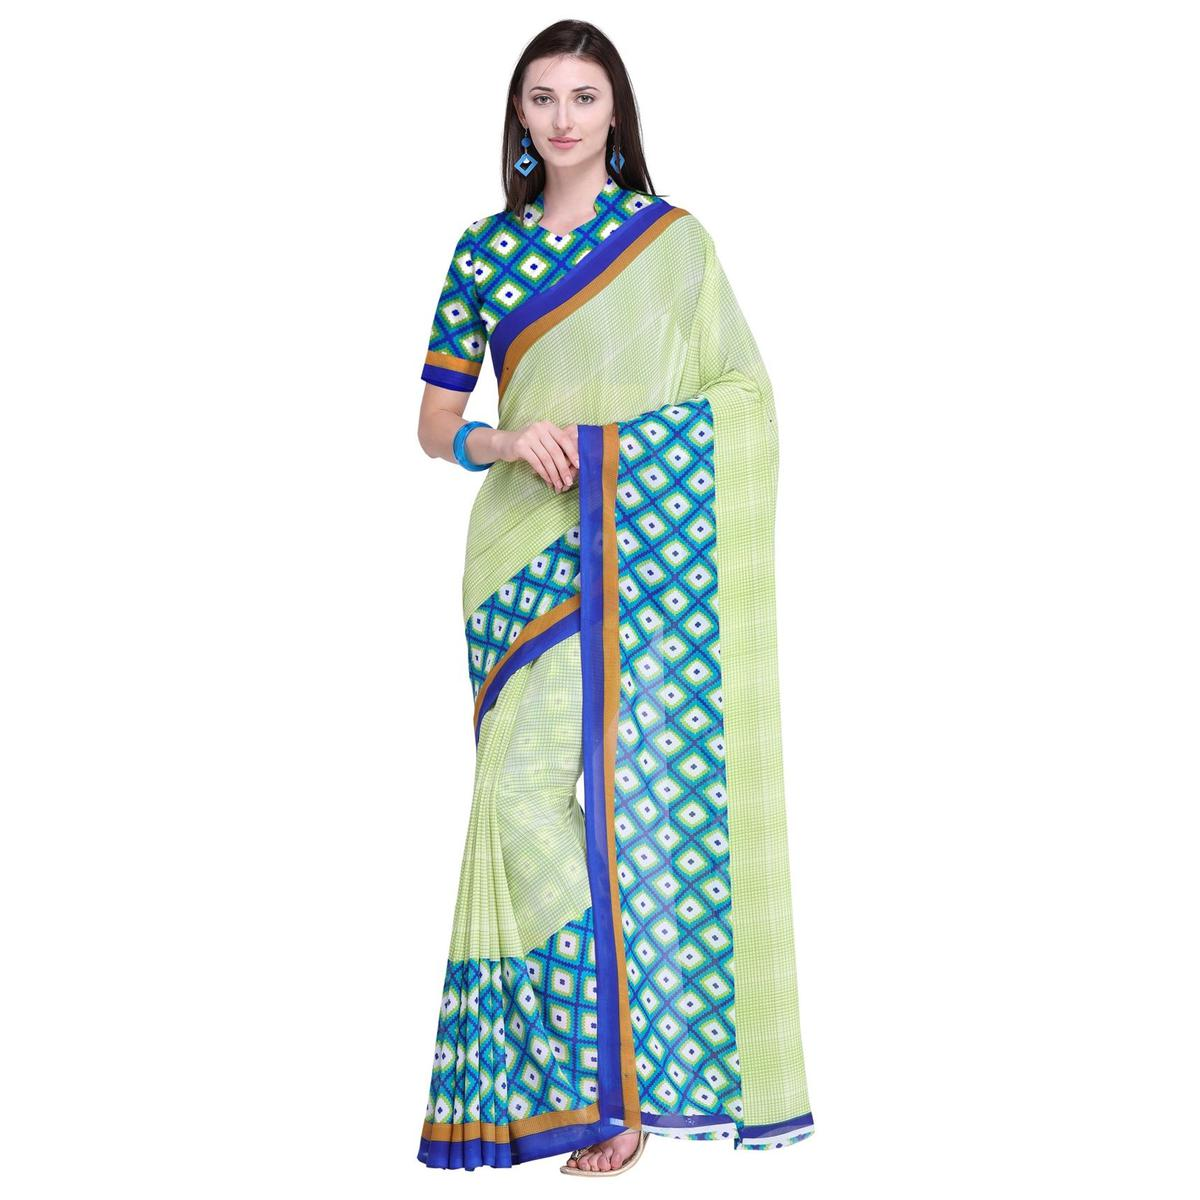 Capricious Green Colored Casual Wear Printed Georgette Saree